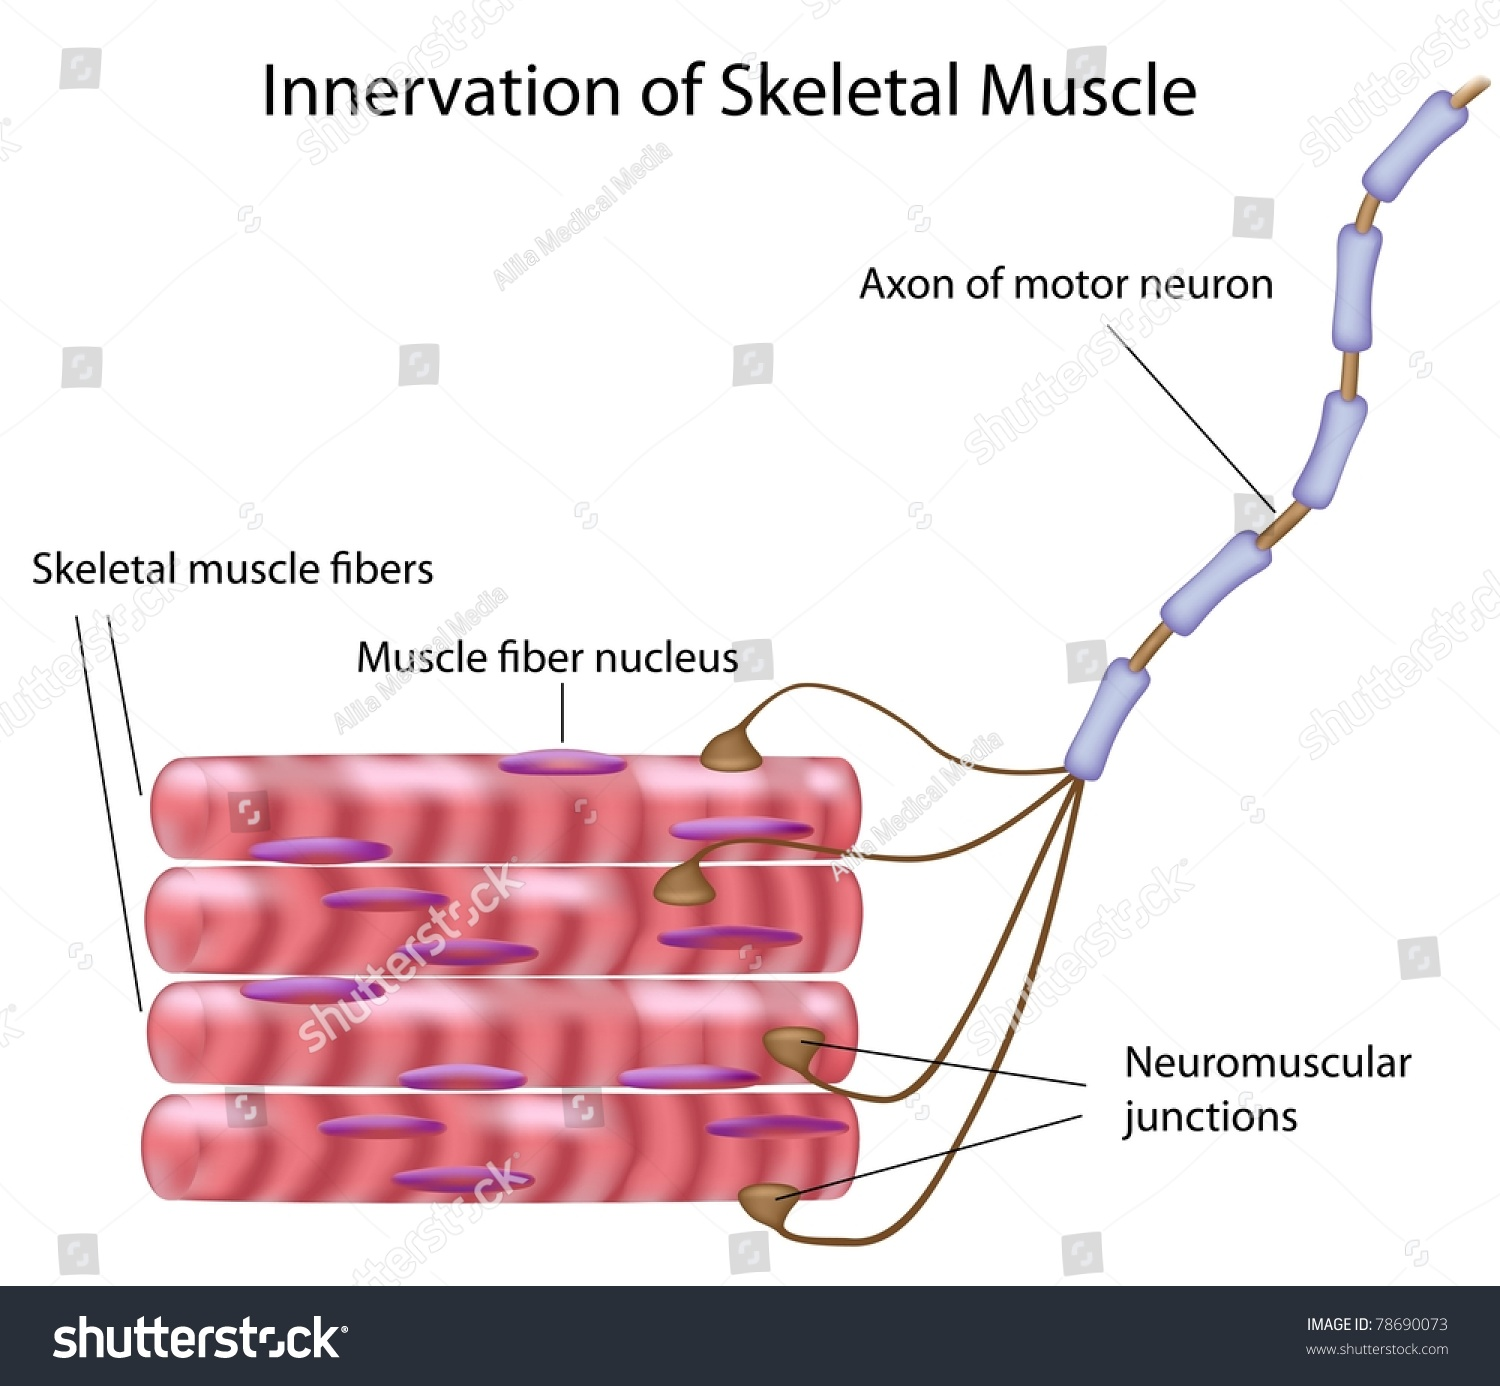 motor unit skeletal fibers diagram basic electronics wiring diagram For Small Motor Neuron Motor Unit skeletal muscle motor neuron motor unit stock illustration 78690073skeletal muscle and motor neuron in a motor